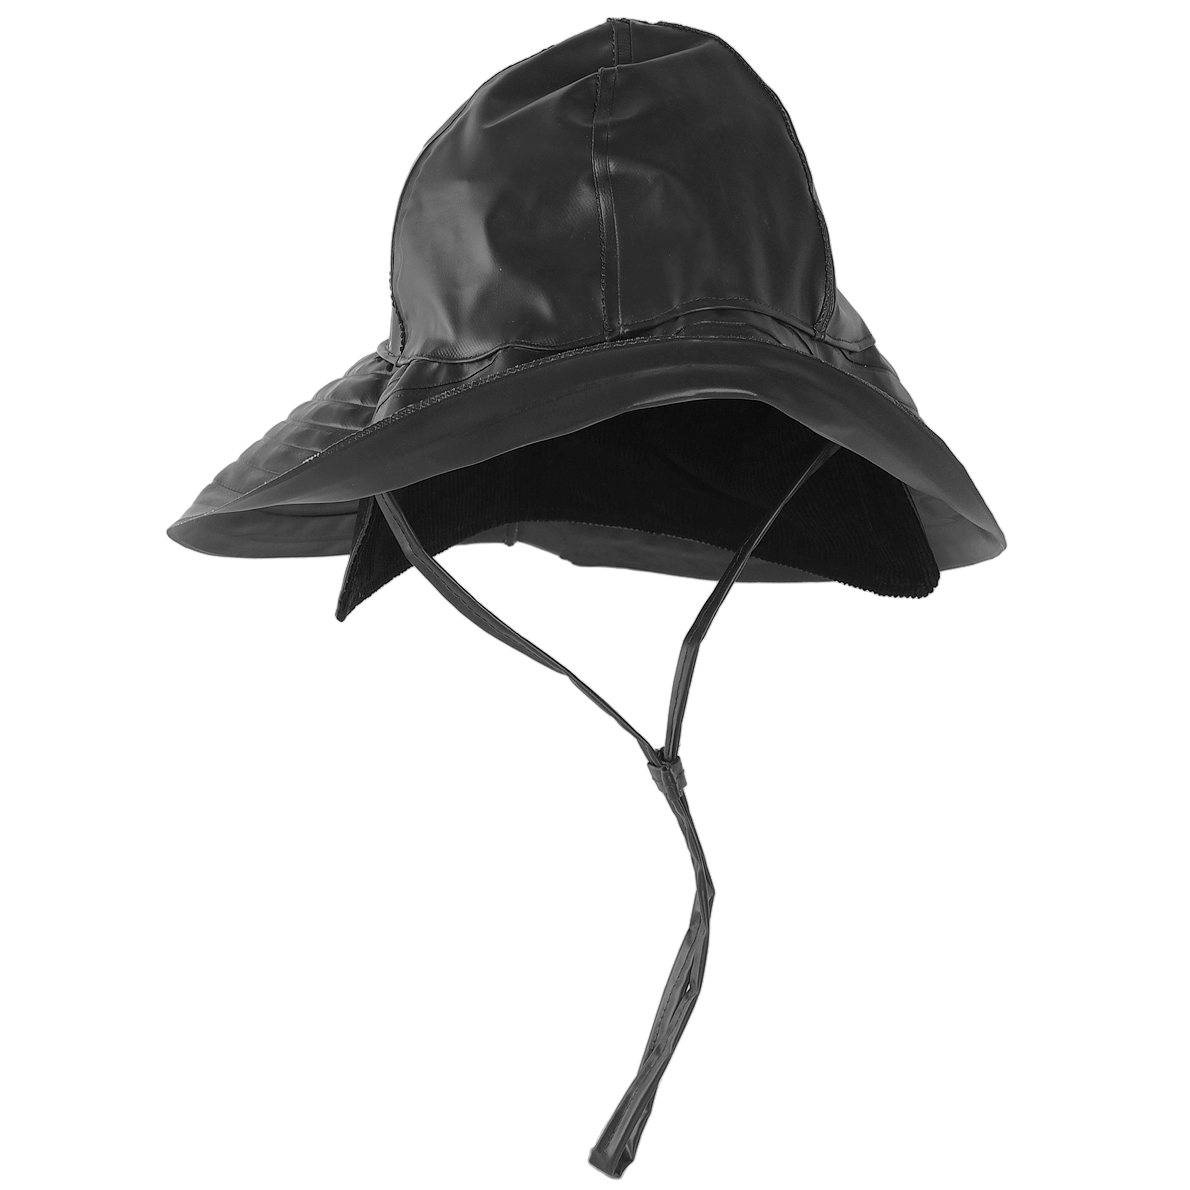 a95558dadfd Sentinel Thumbnail 1. Sentinel Mil-Tec Southwestern Rain Hat Waterproof  Neck Protection Outdoor Storm Cap Black